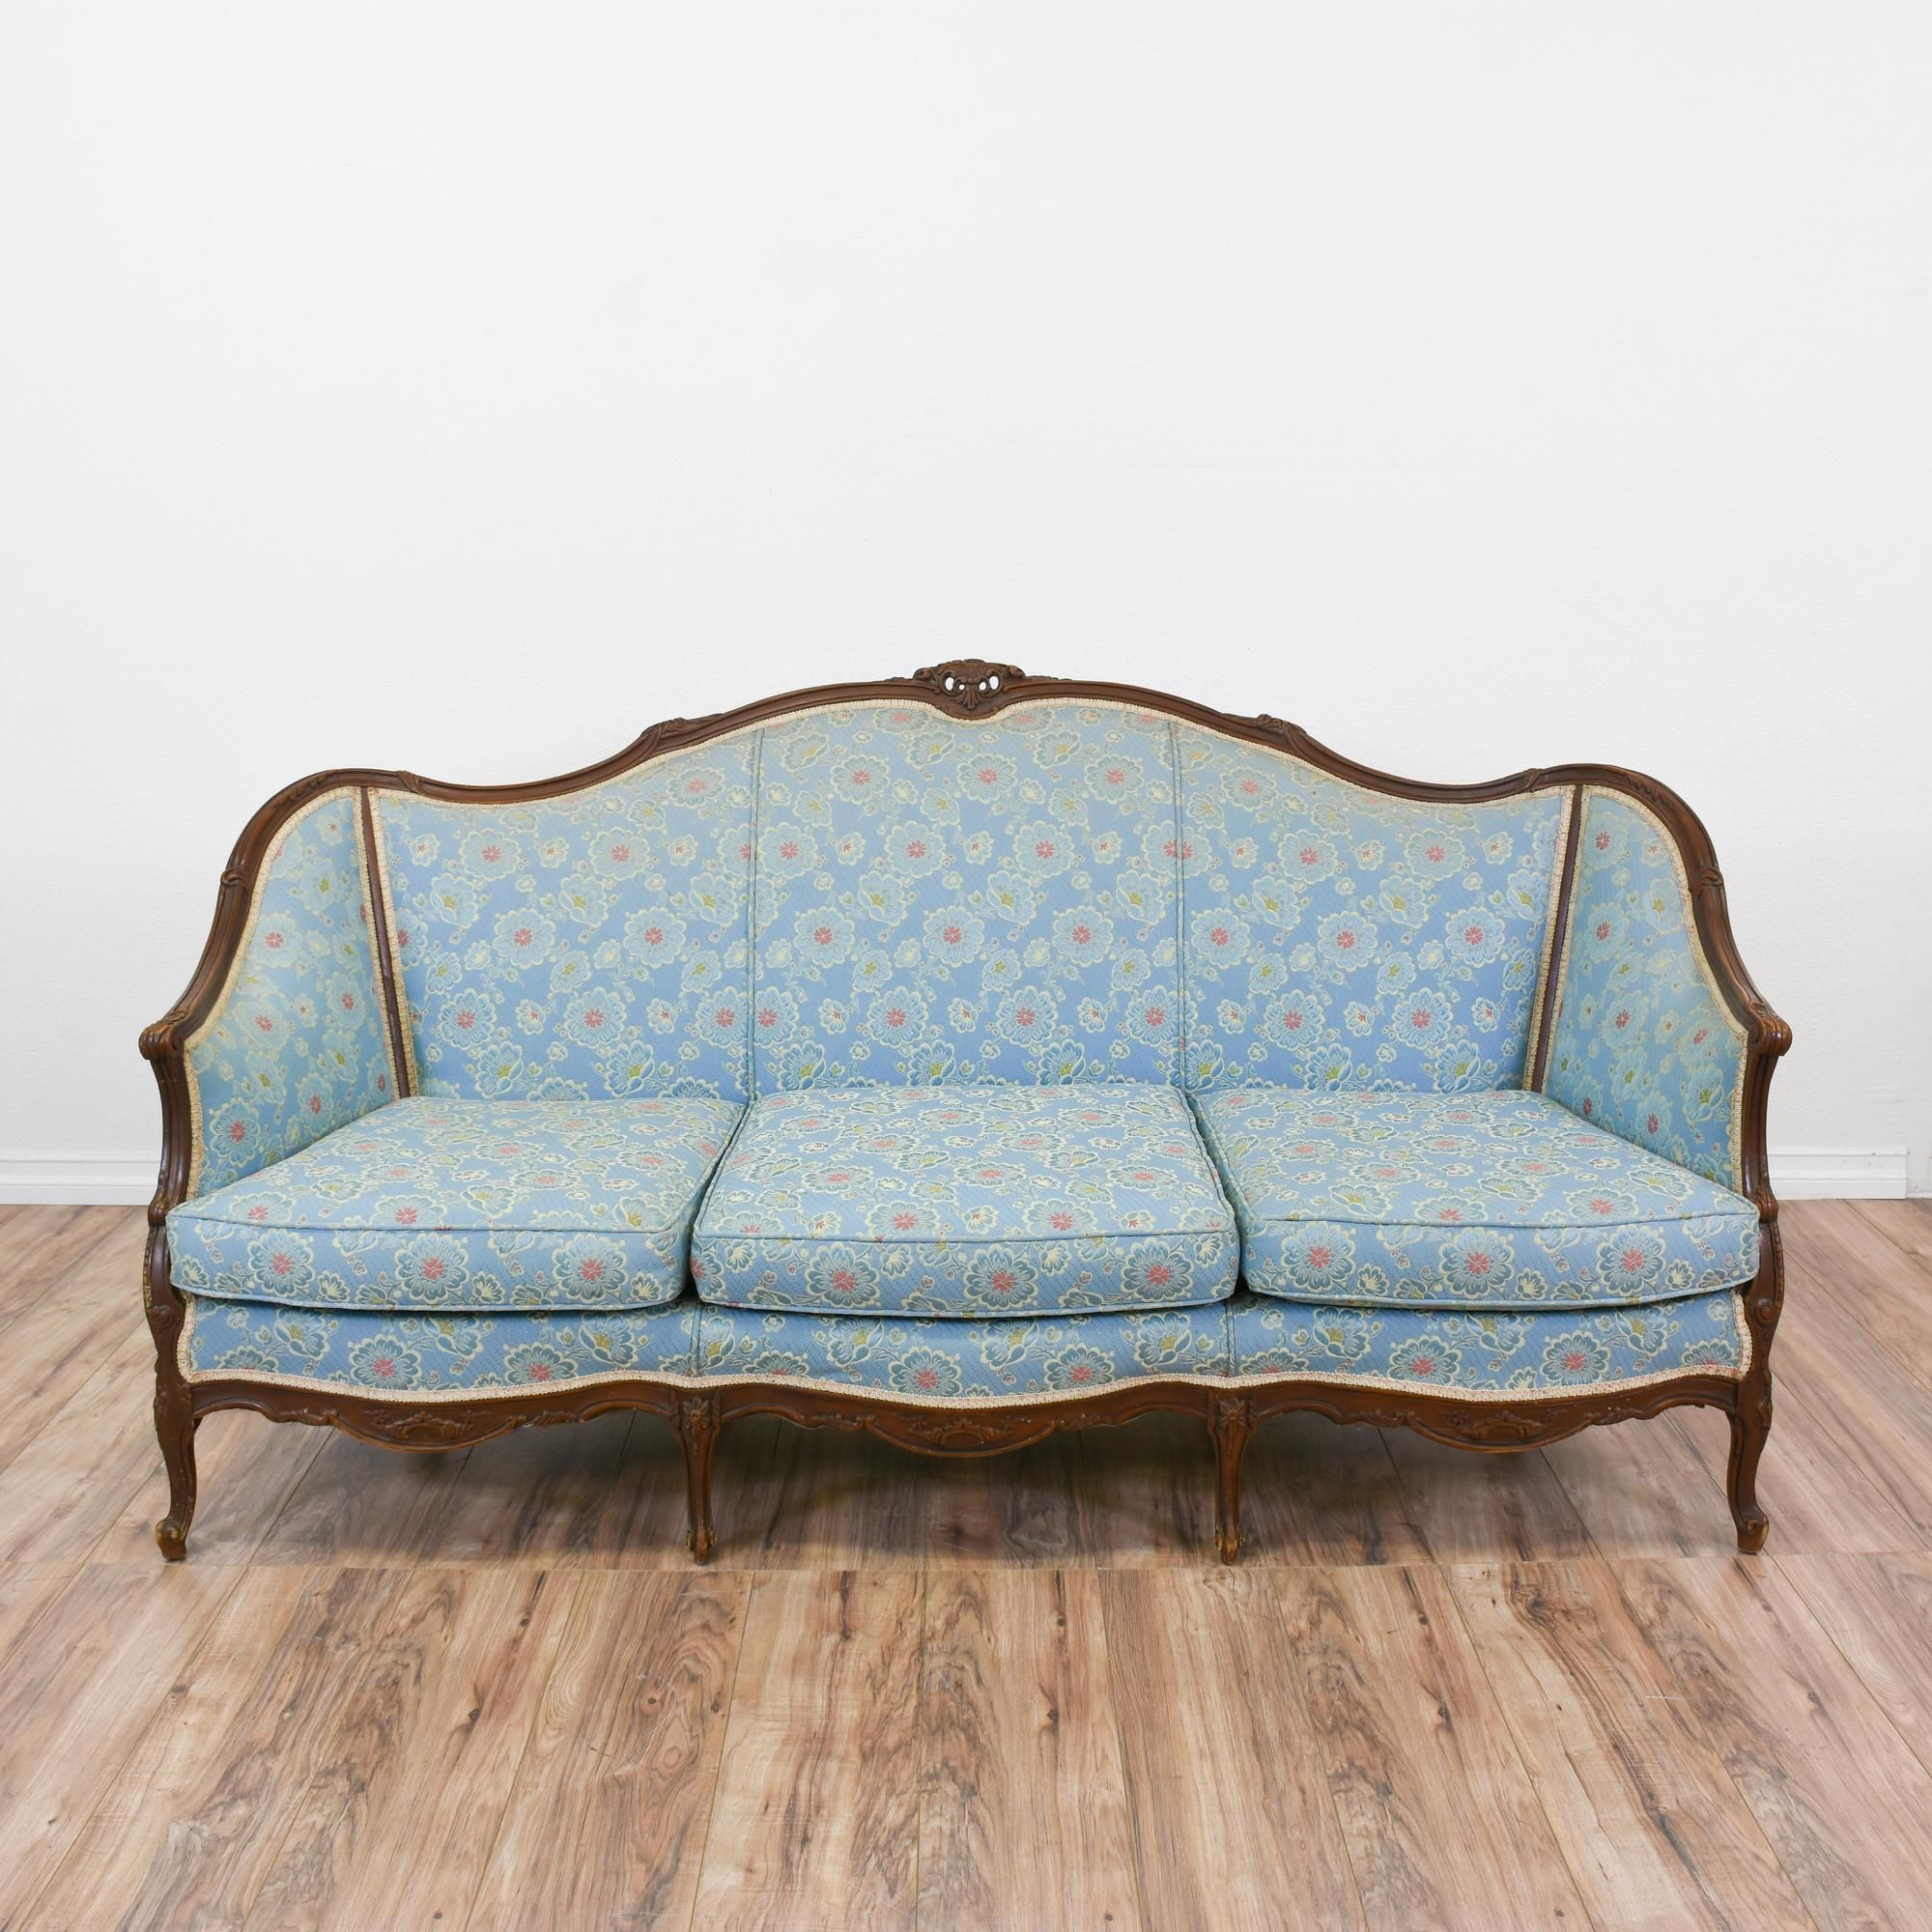 This French Bergere style sofa is upholstered in a durable light